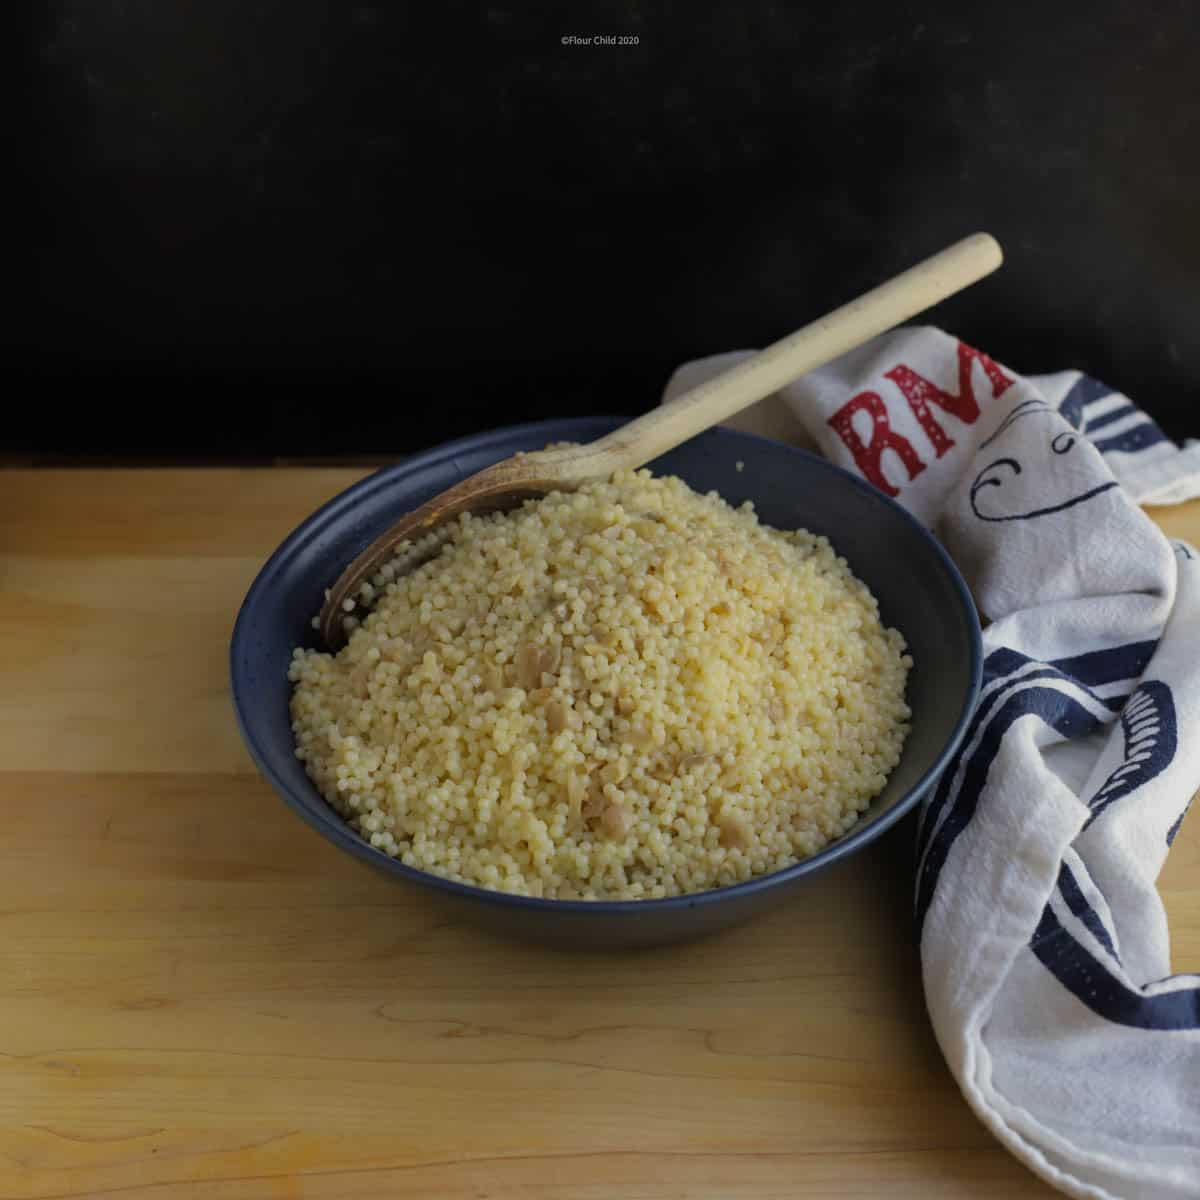 This traditional Jewish farfel garlic egg noodles dish makes a tasty complement to any meal.